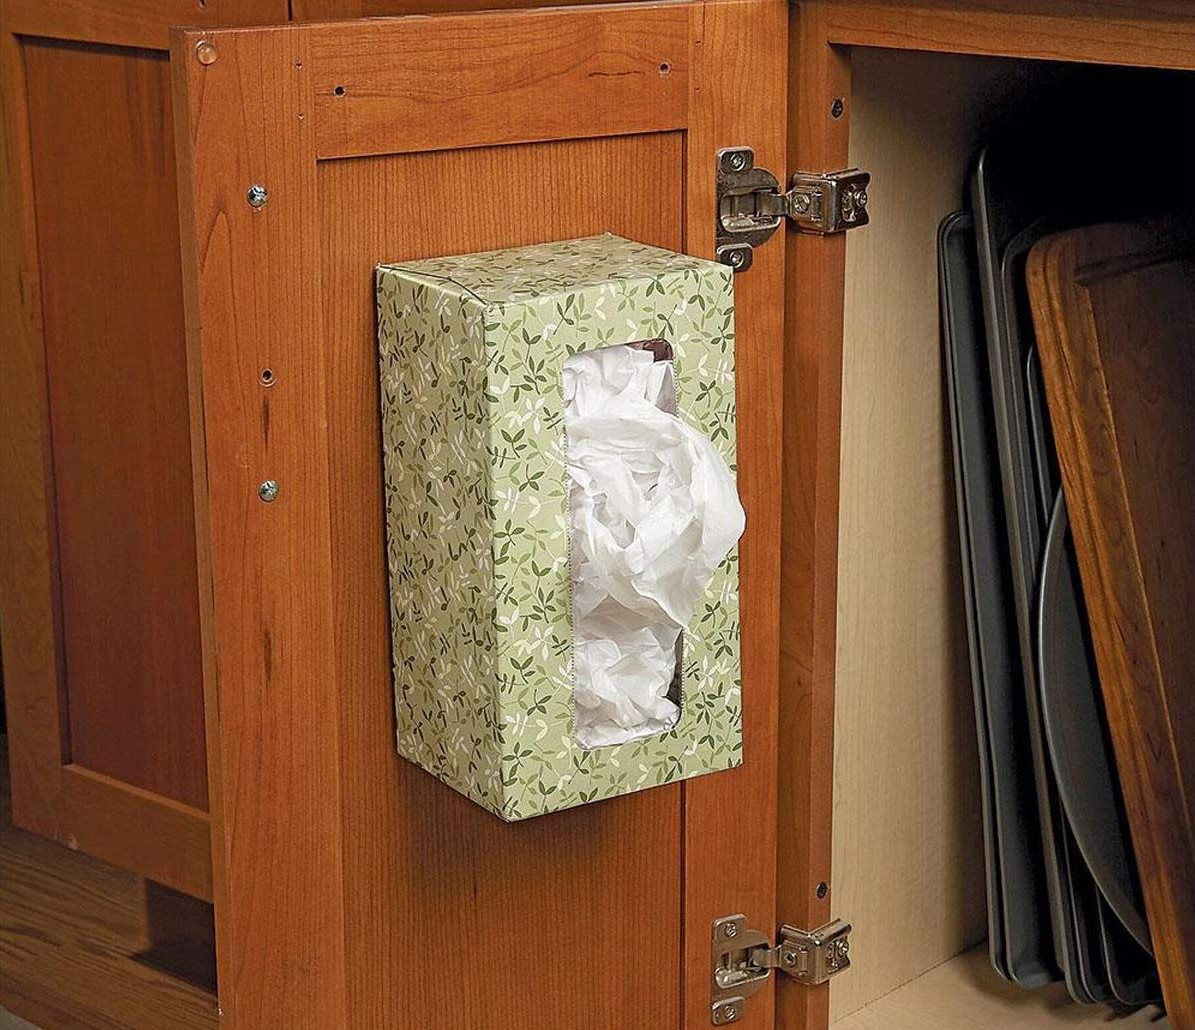 Use An Empty Tissue Box As A Plastic Bag Holder